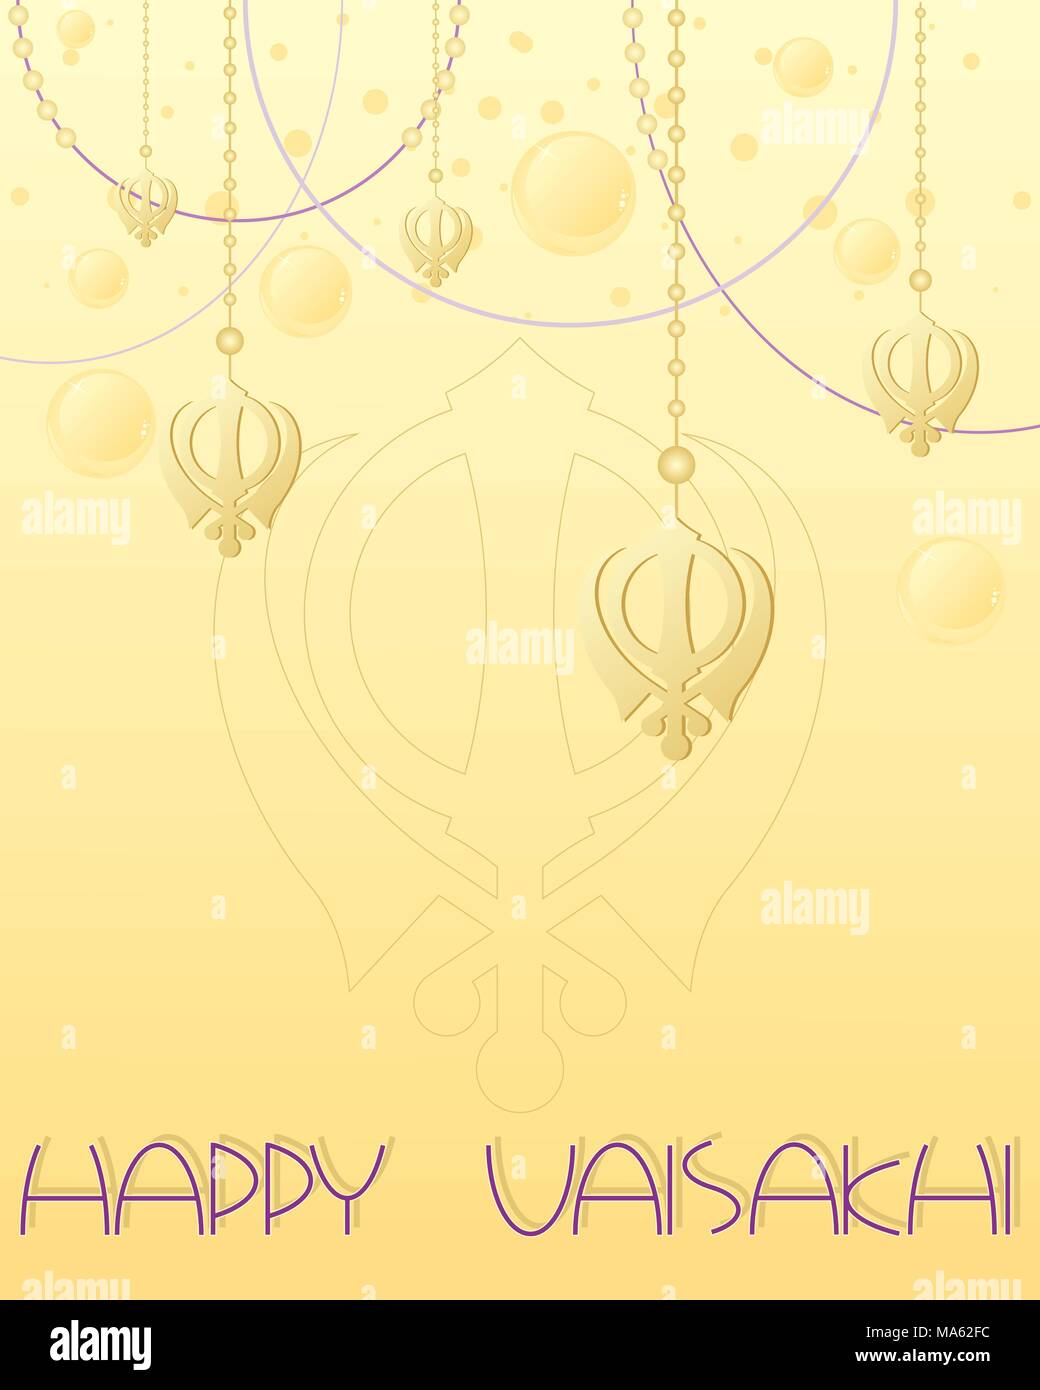 a vector illustration in eps 10 format of a happy Vaisakhi greeting card design with golden Sikh symbol on decorative thread on a gold background - Stock Vector